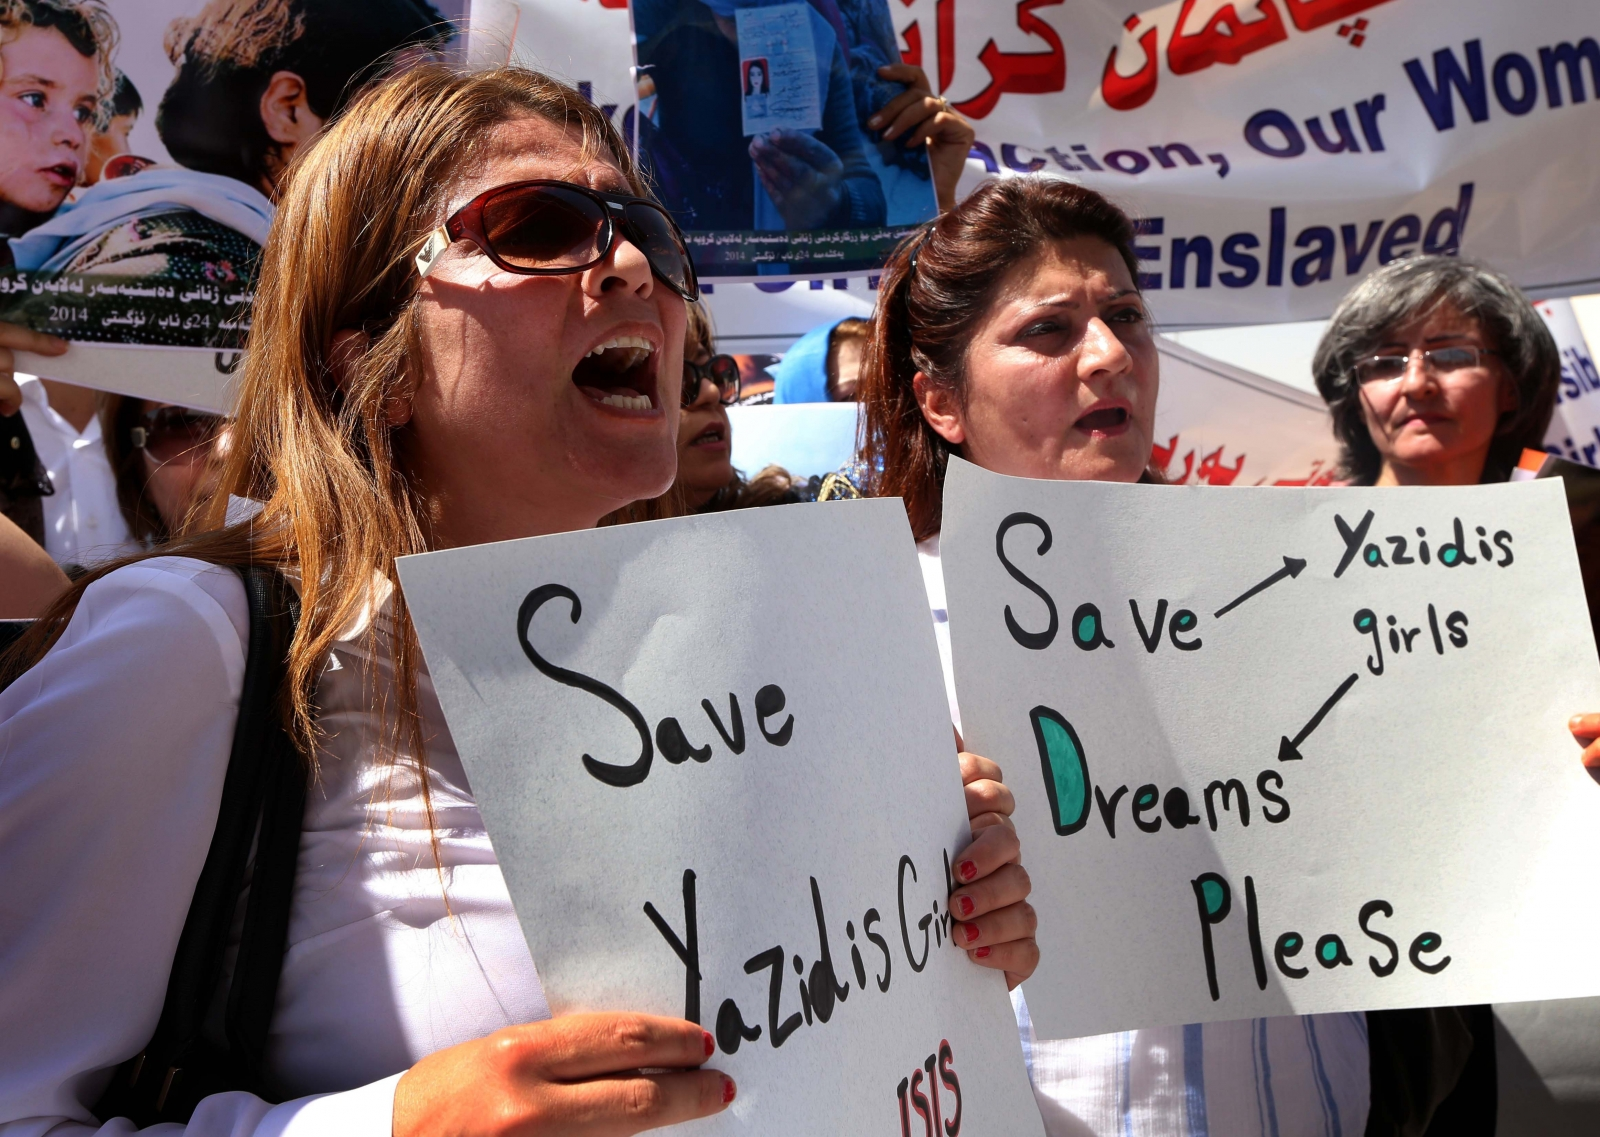 Iraqi Kurdish protesters denounce the Islamic State (IS) threat to Yazidi women and girls during a demonstration